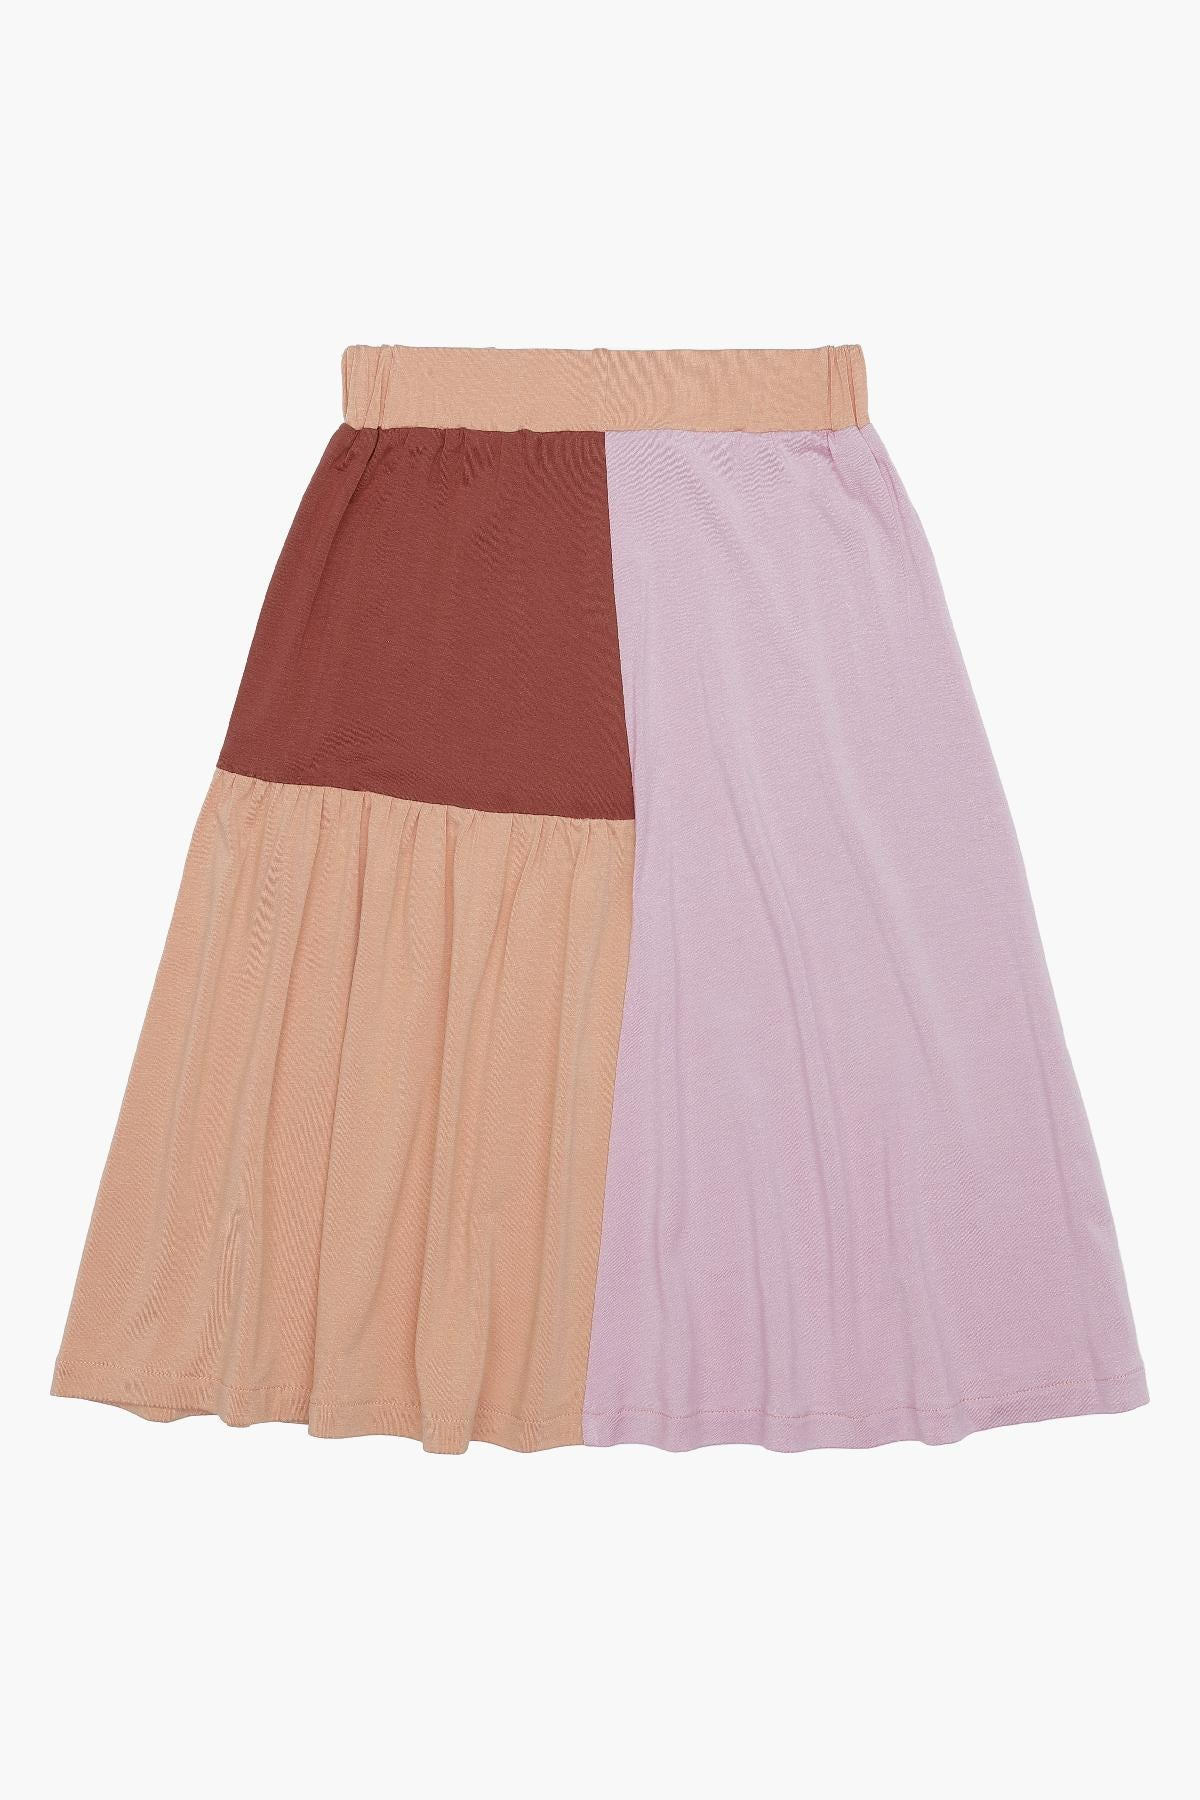 Soft Gallery Florenza Girls Skirt